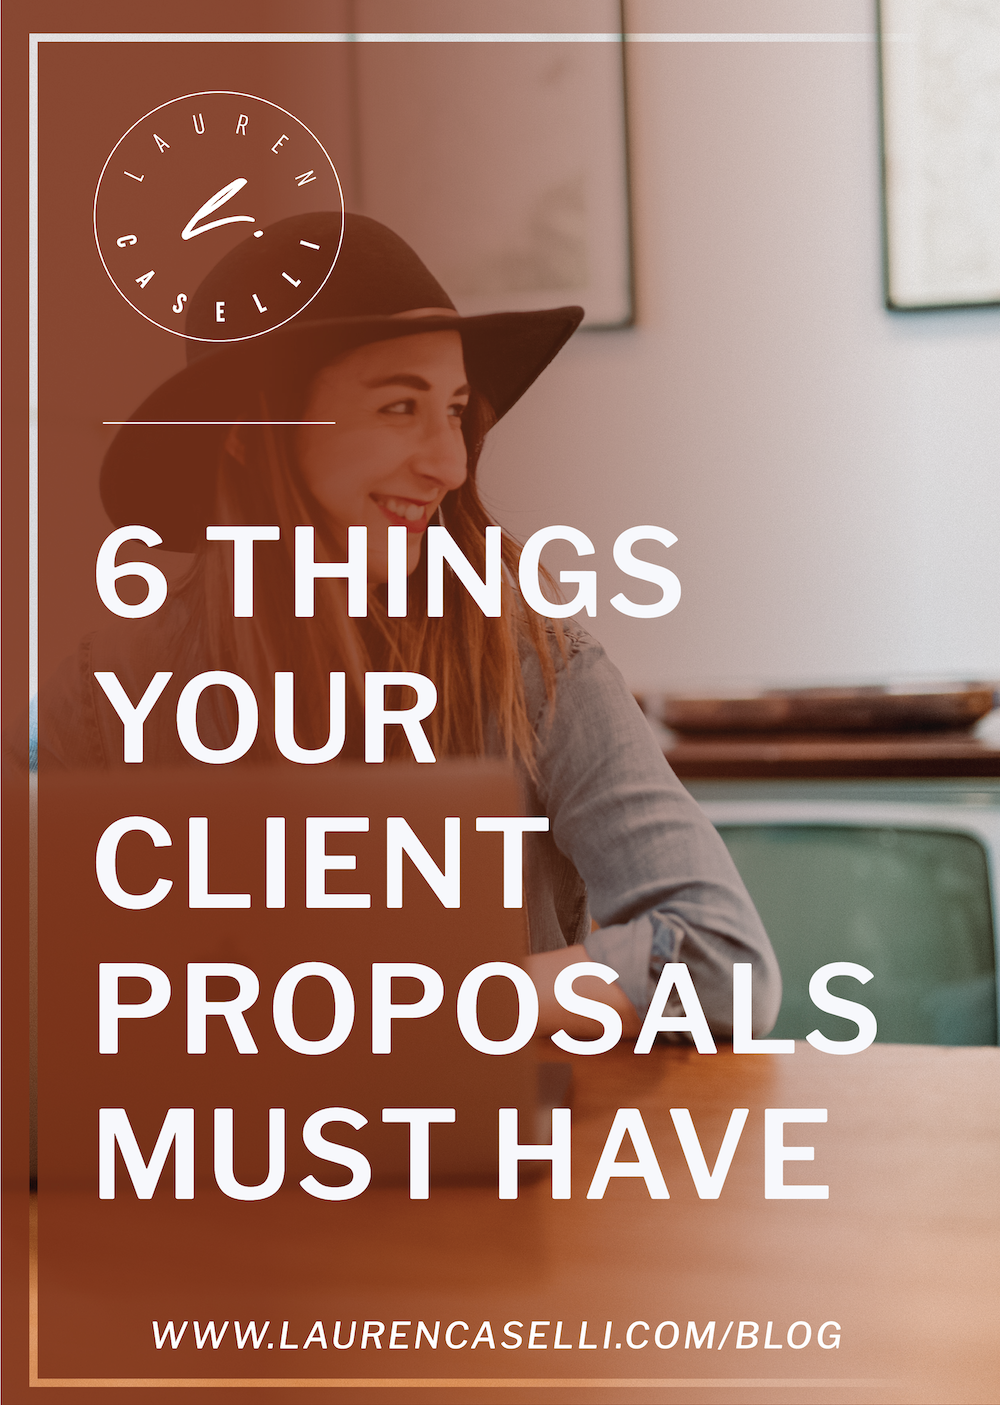 6 Things Your Client Proposals Must Have Proposal, Event